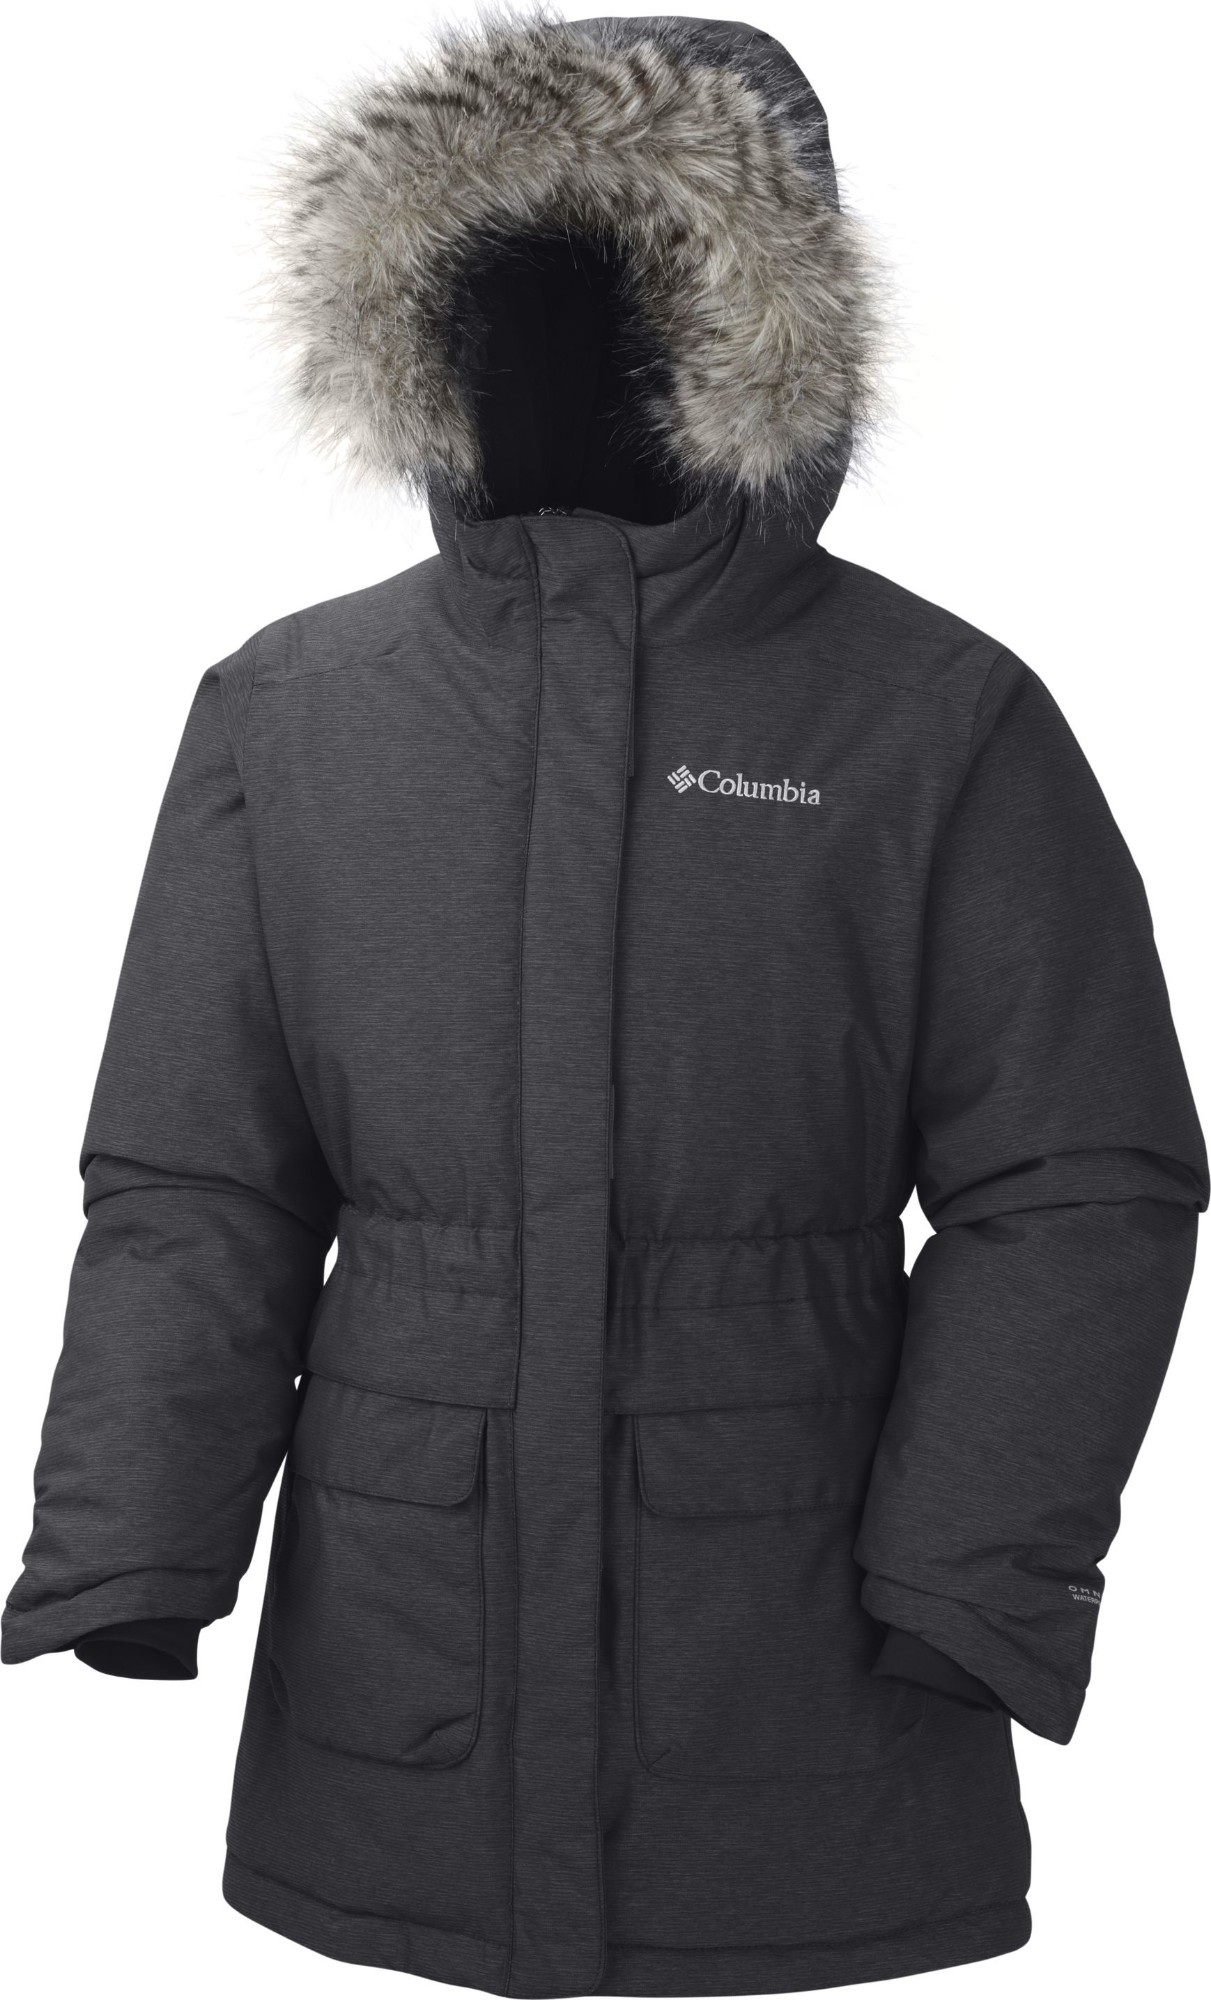 Columbia Nordic Strider Jacket Black M